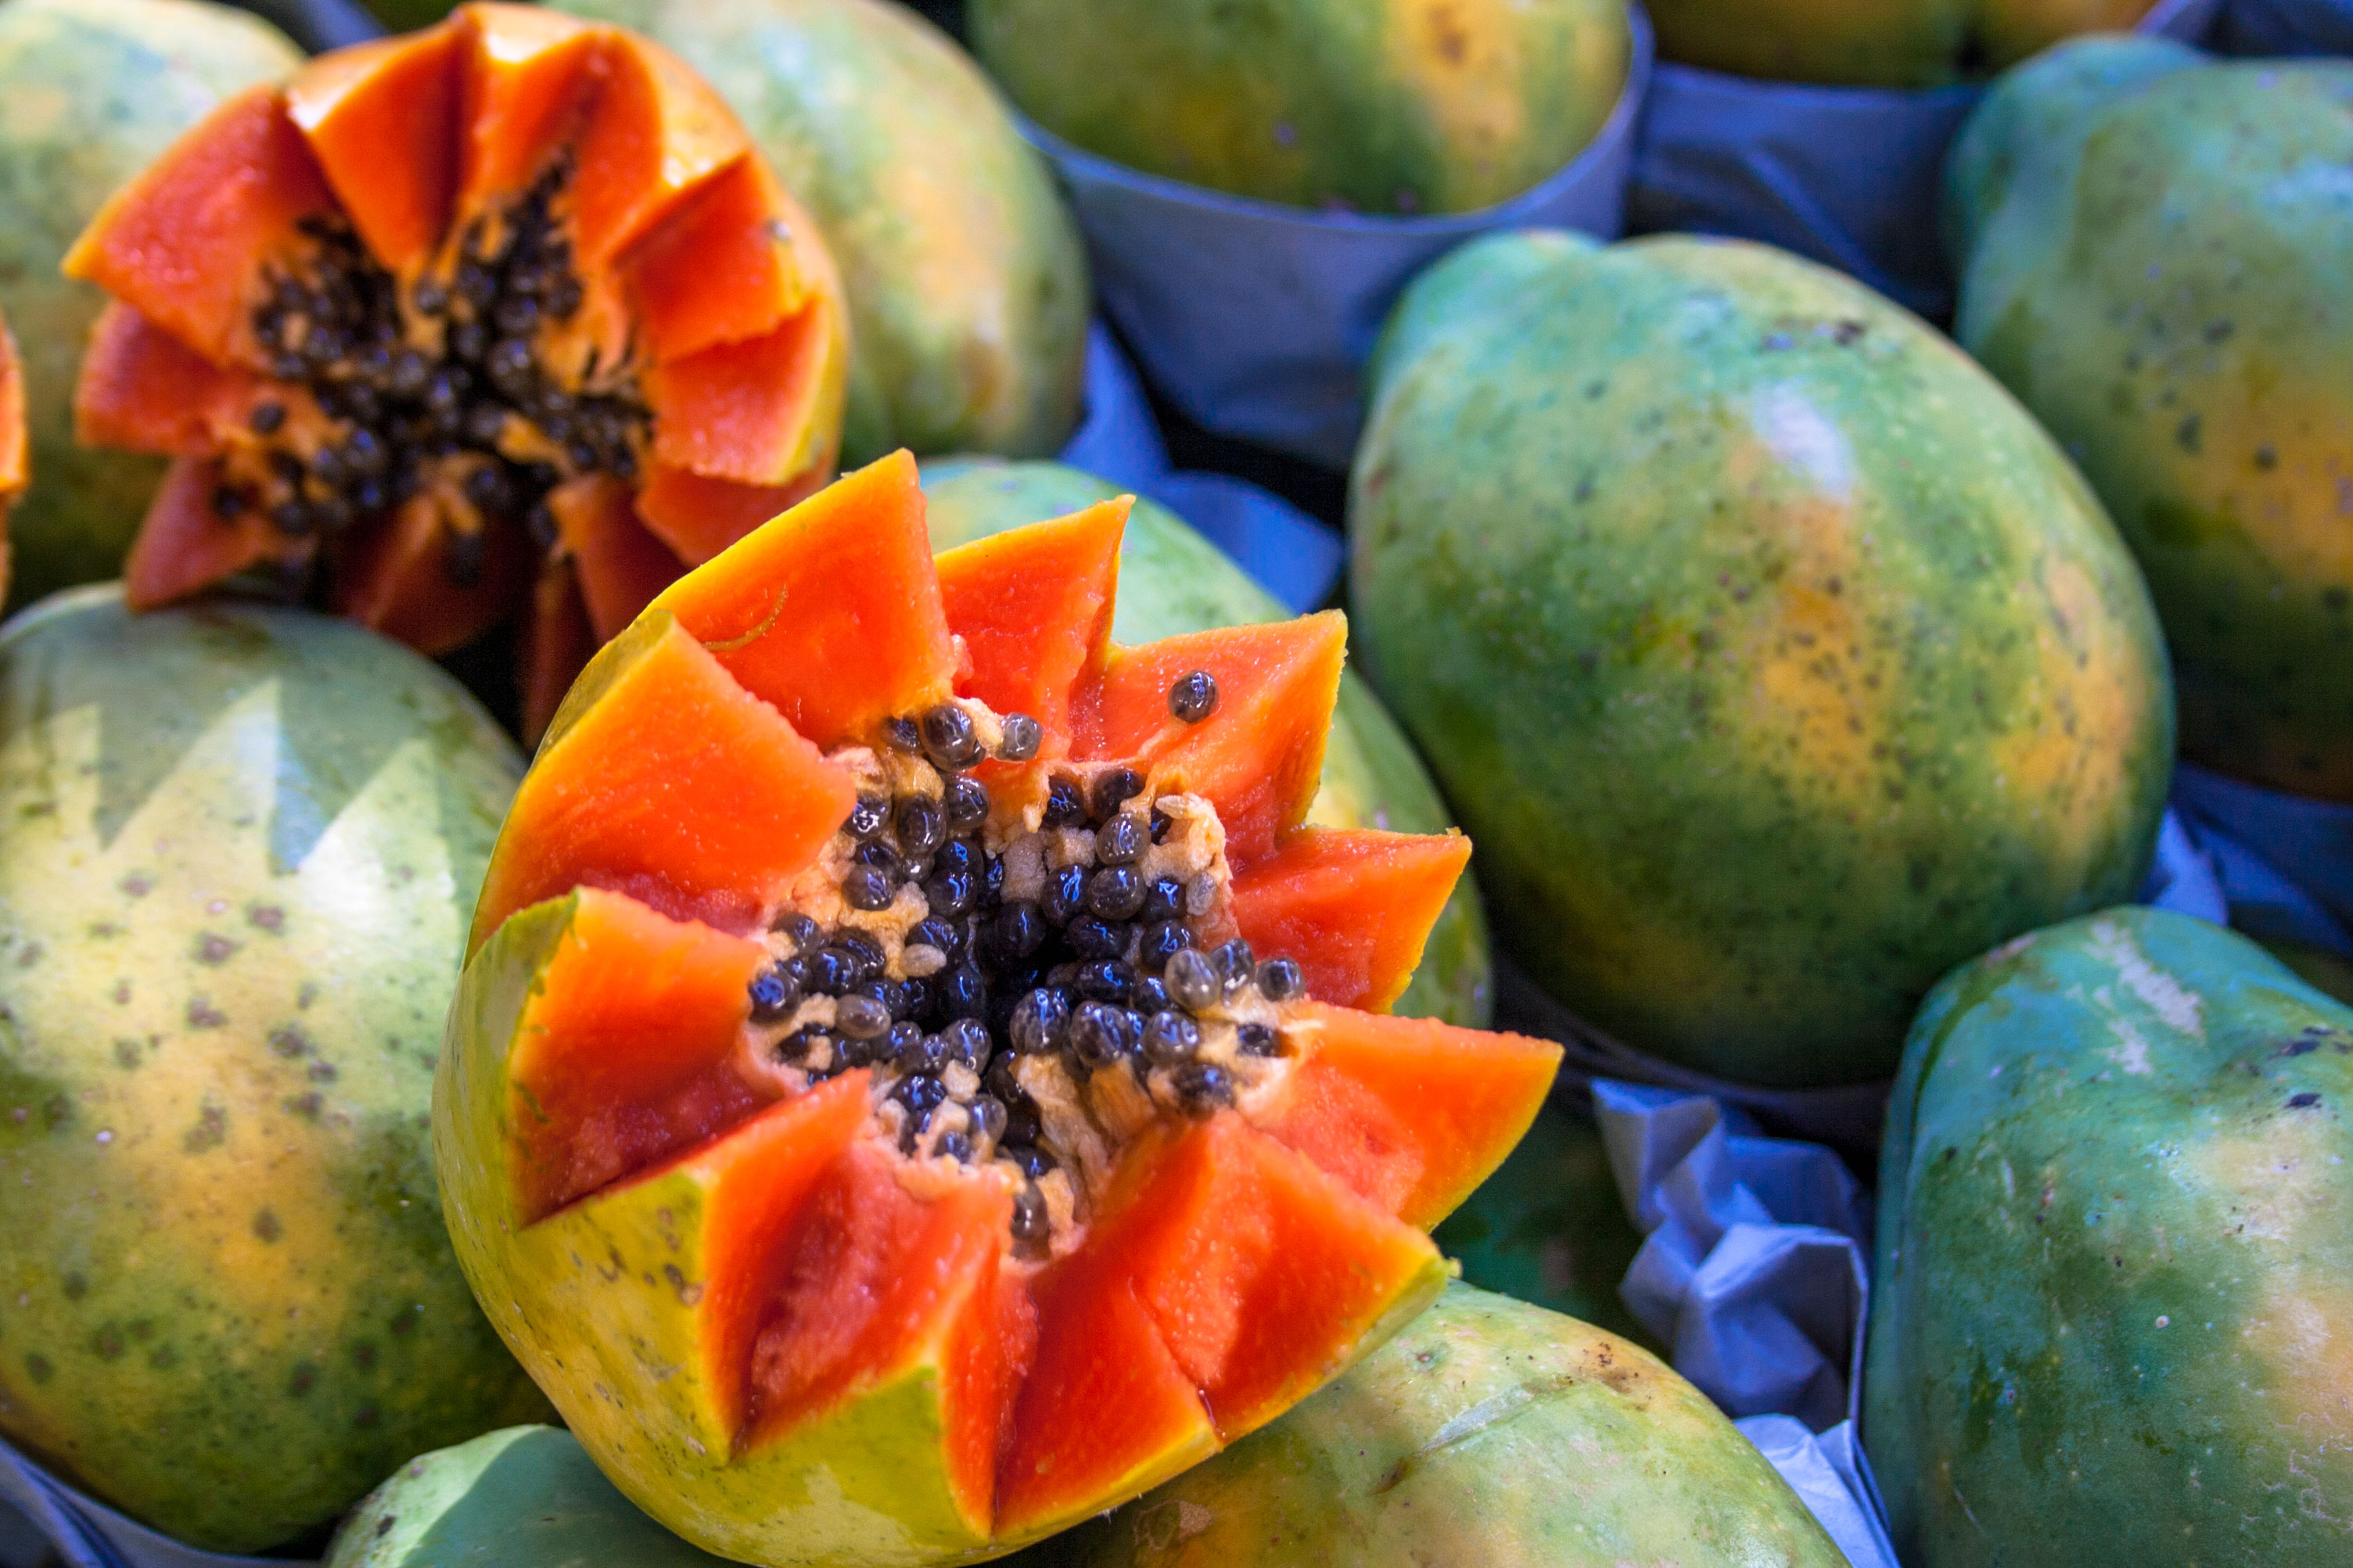 Ripe Papayas are simply good for you